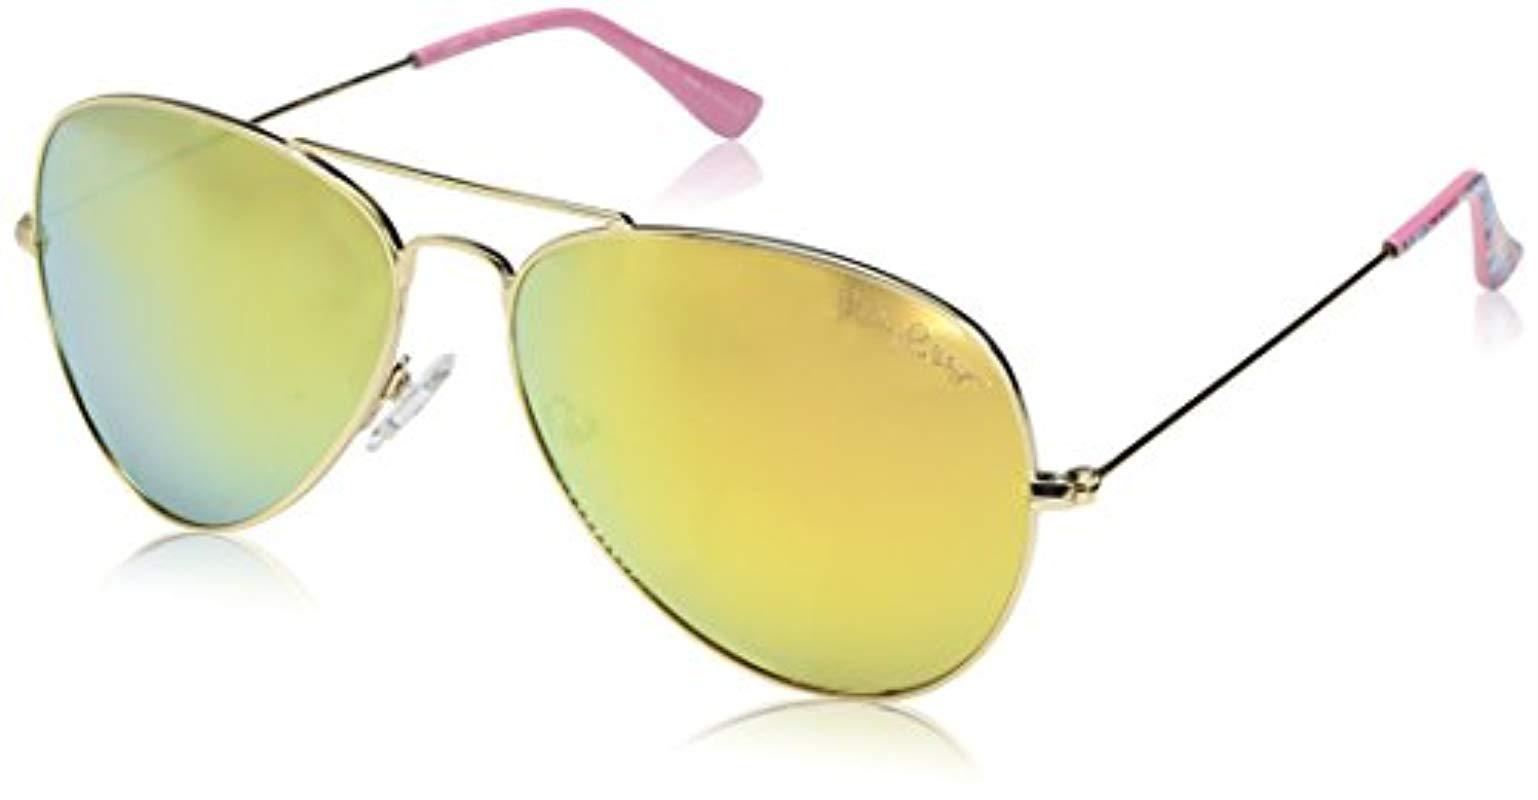 caaf0e1acdb Lyst - Lilly Pulitzer Lexy Polarized Aviator Sunglasses Shiny Gold ...